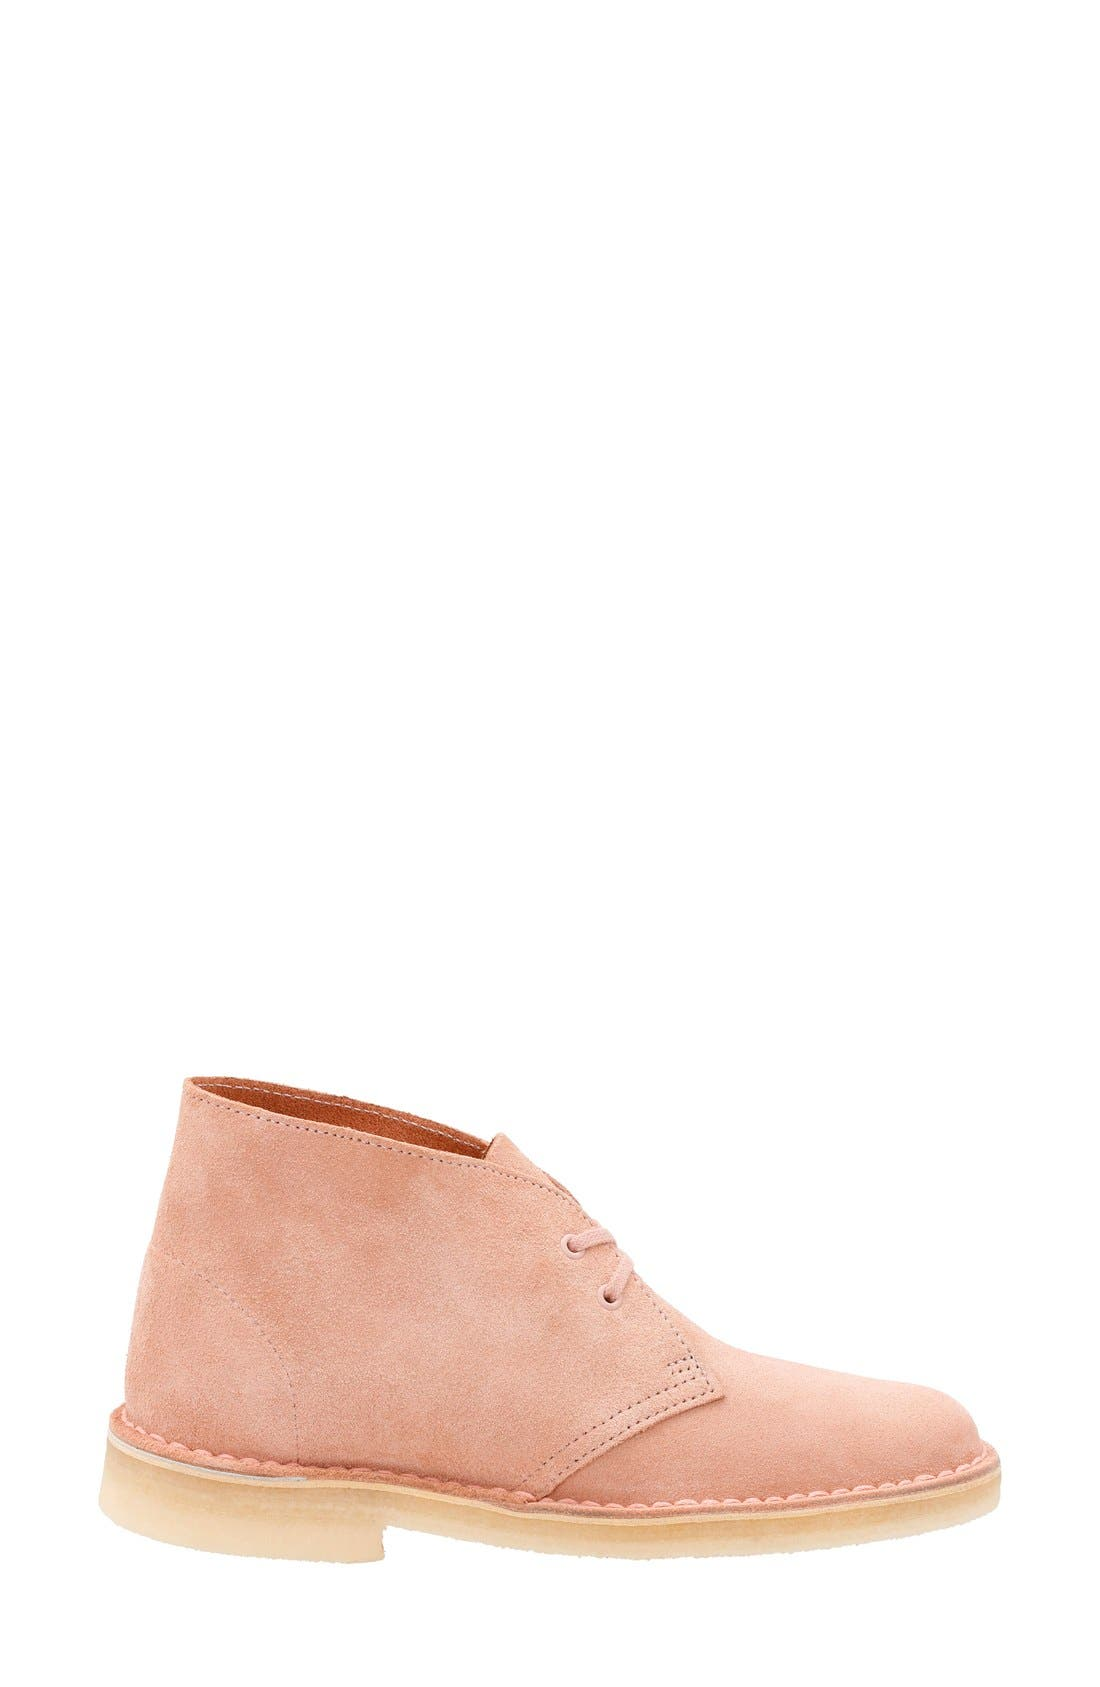 'Desert' ChukkaBoot,                             Alternate thumbnail 3, color,                             Dusty Pink Suede